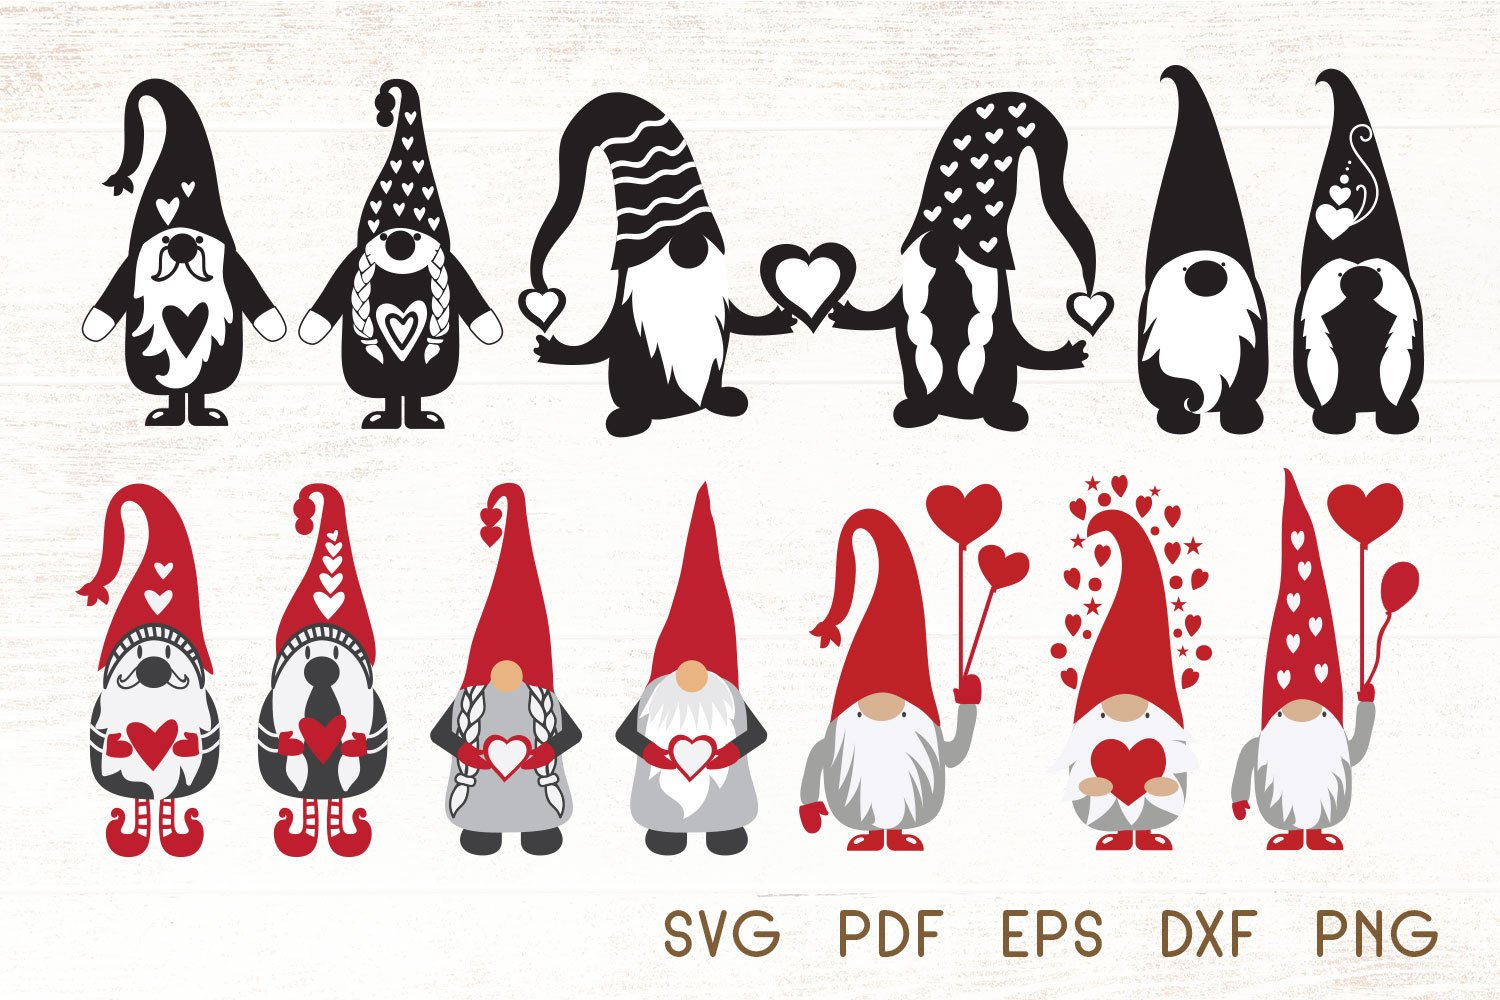 Download 19+ Gnome Valentine Svg Free Background Free SVG files ...